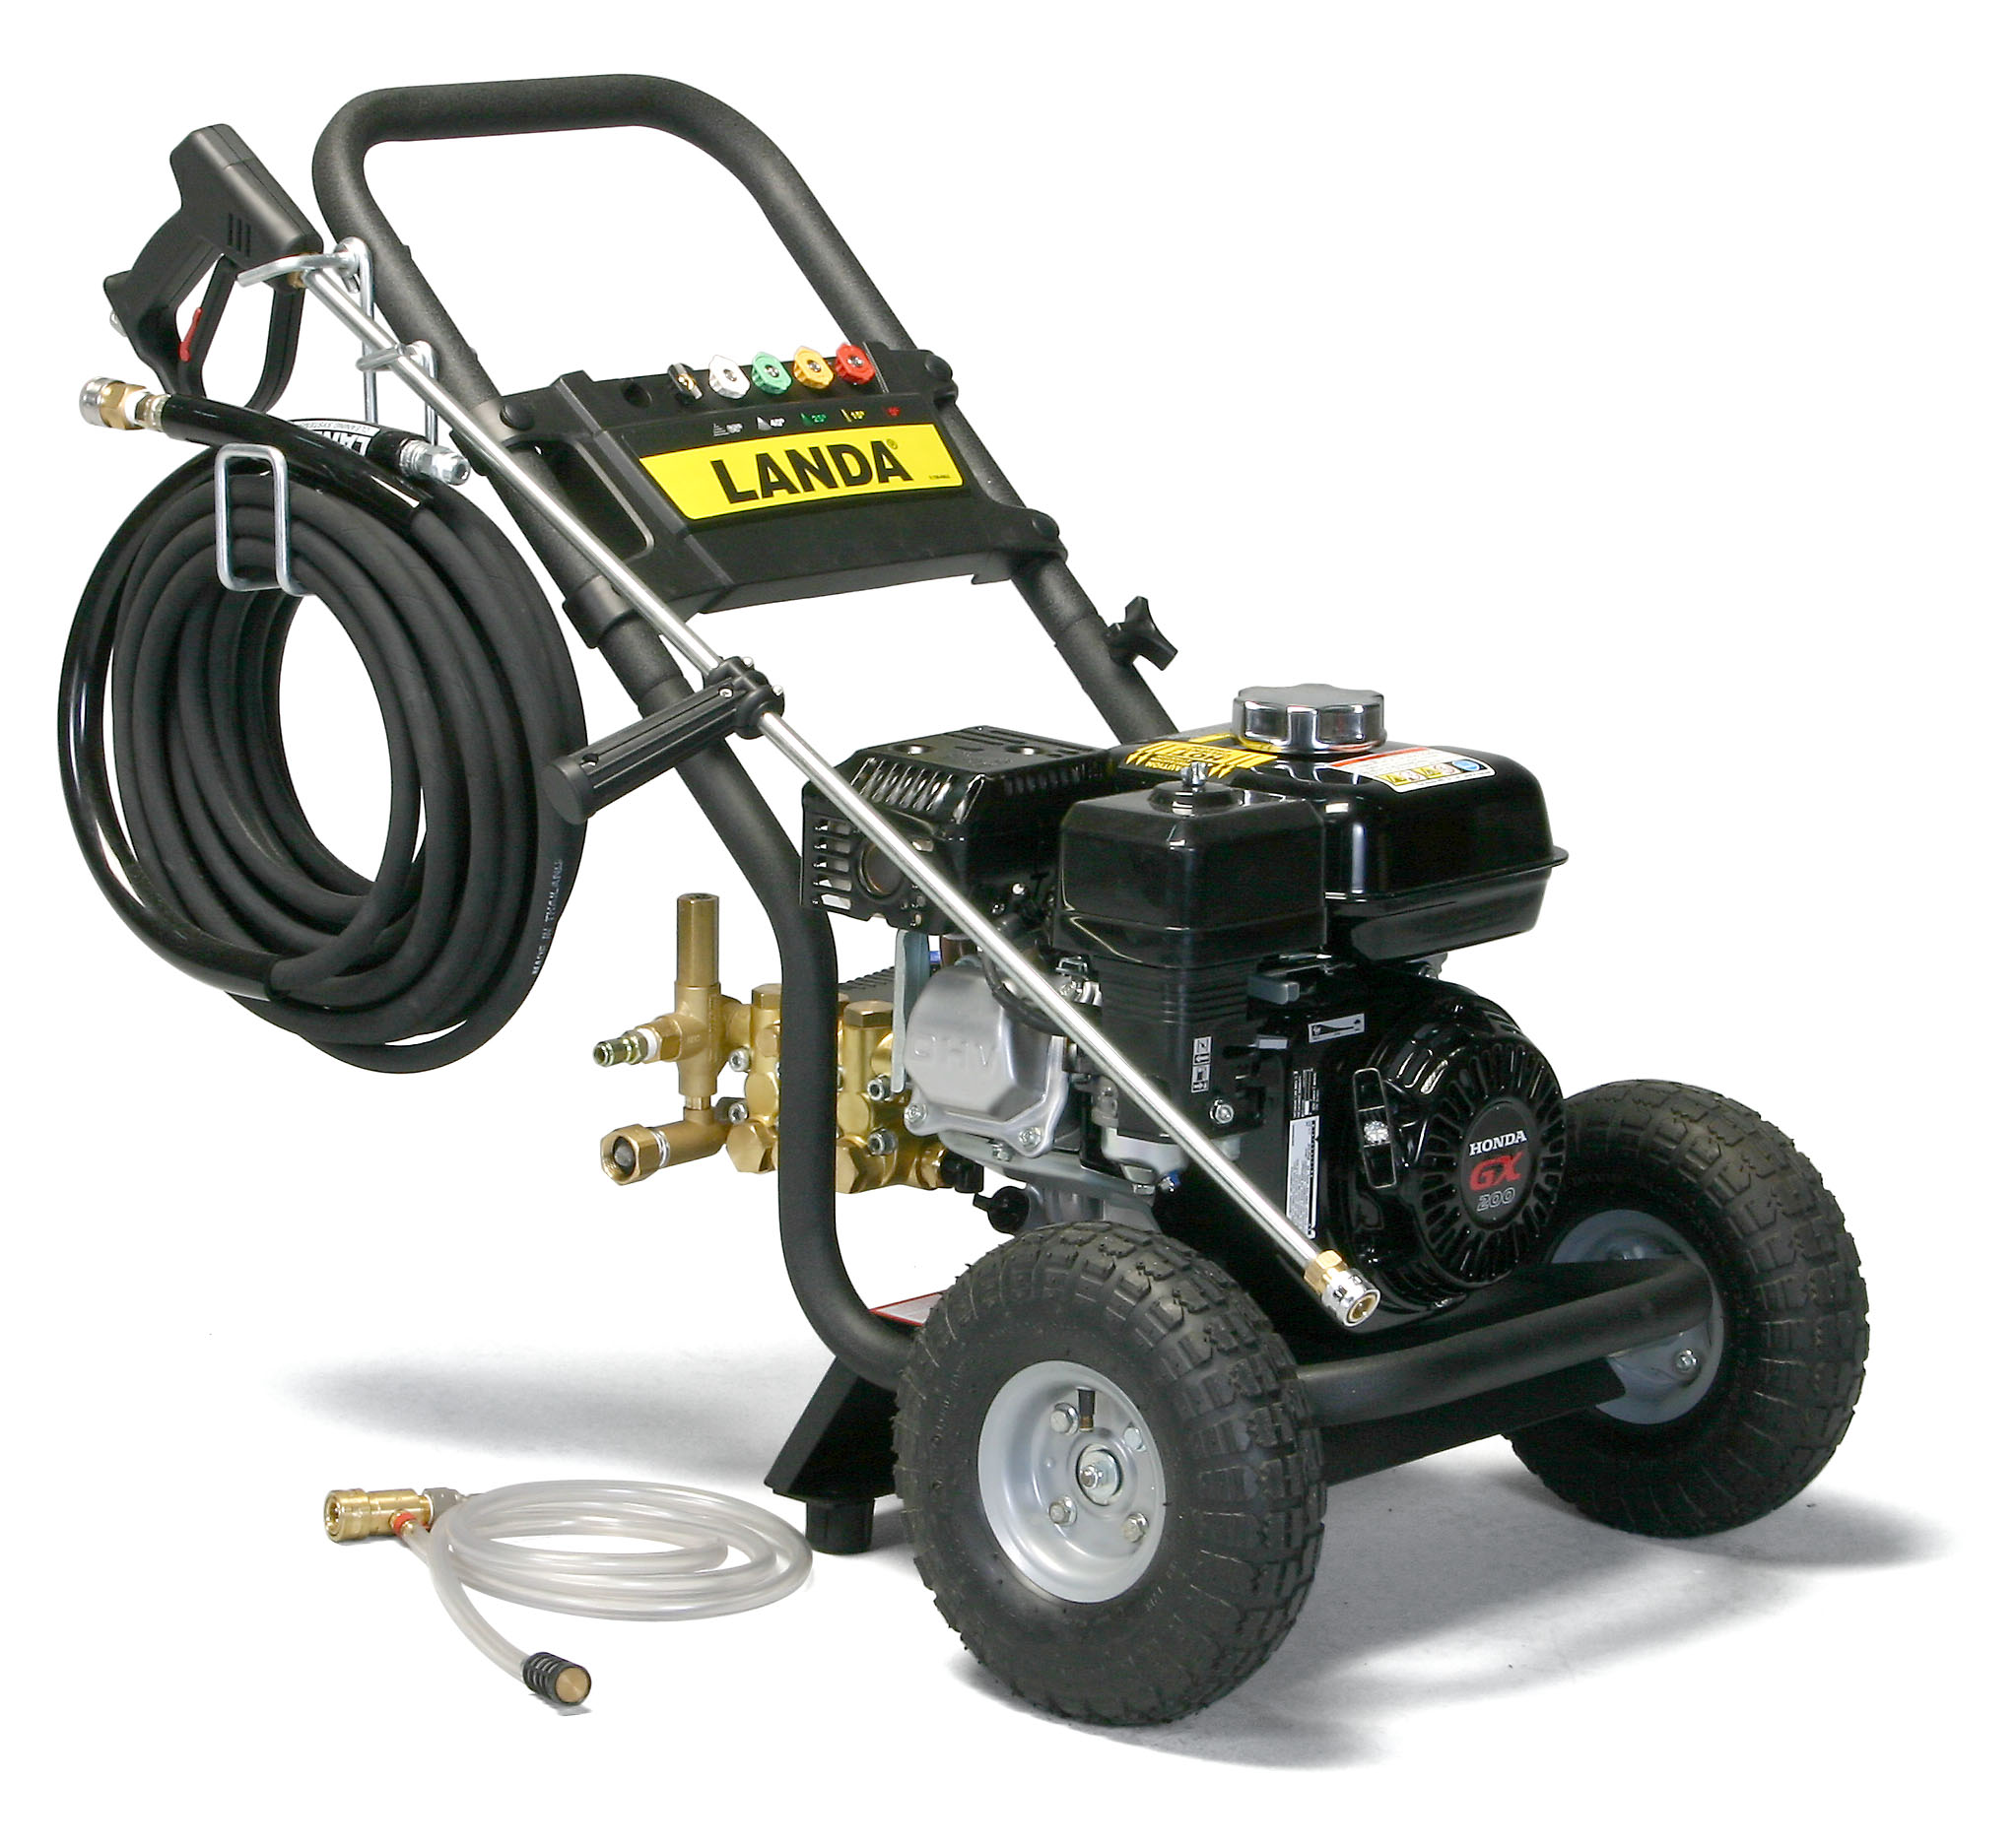 Landa Cold Water Direct Drive Pressure Washer PD3-23327